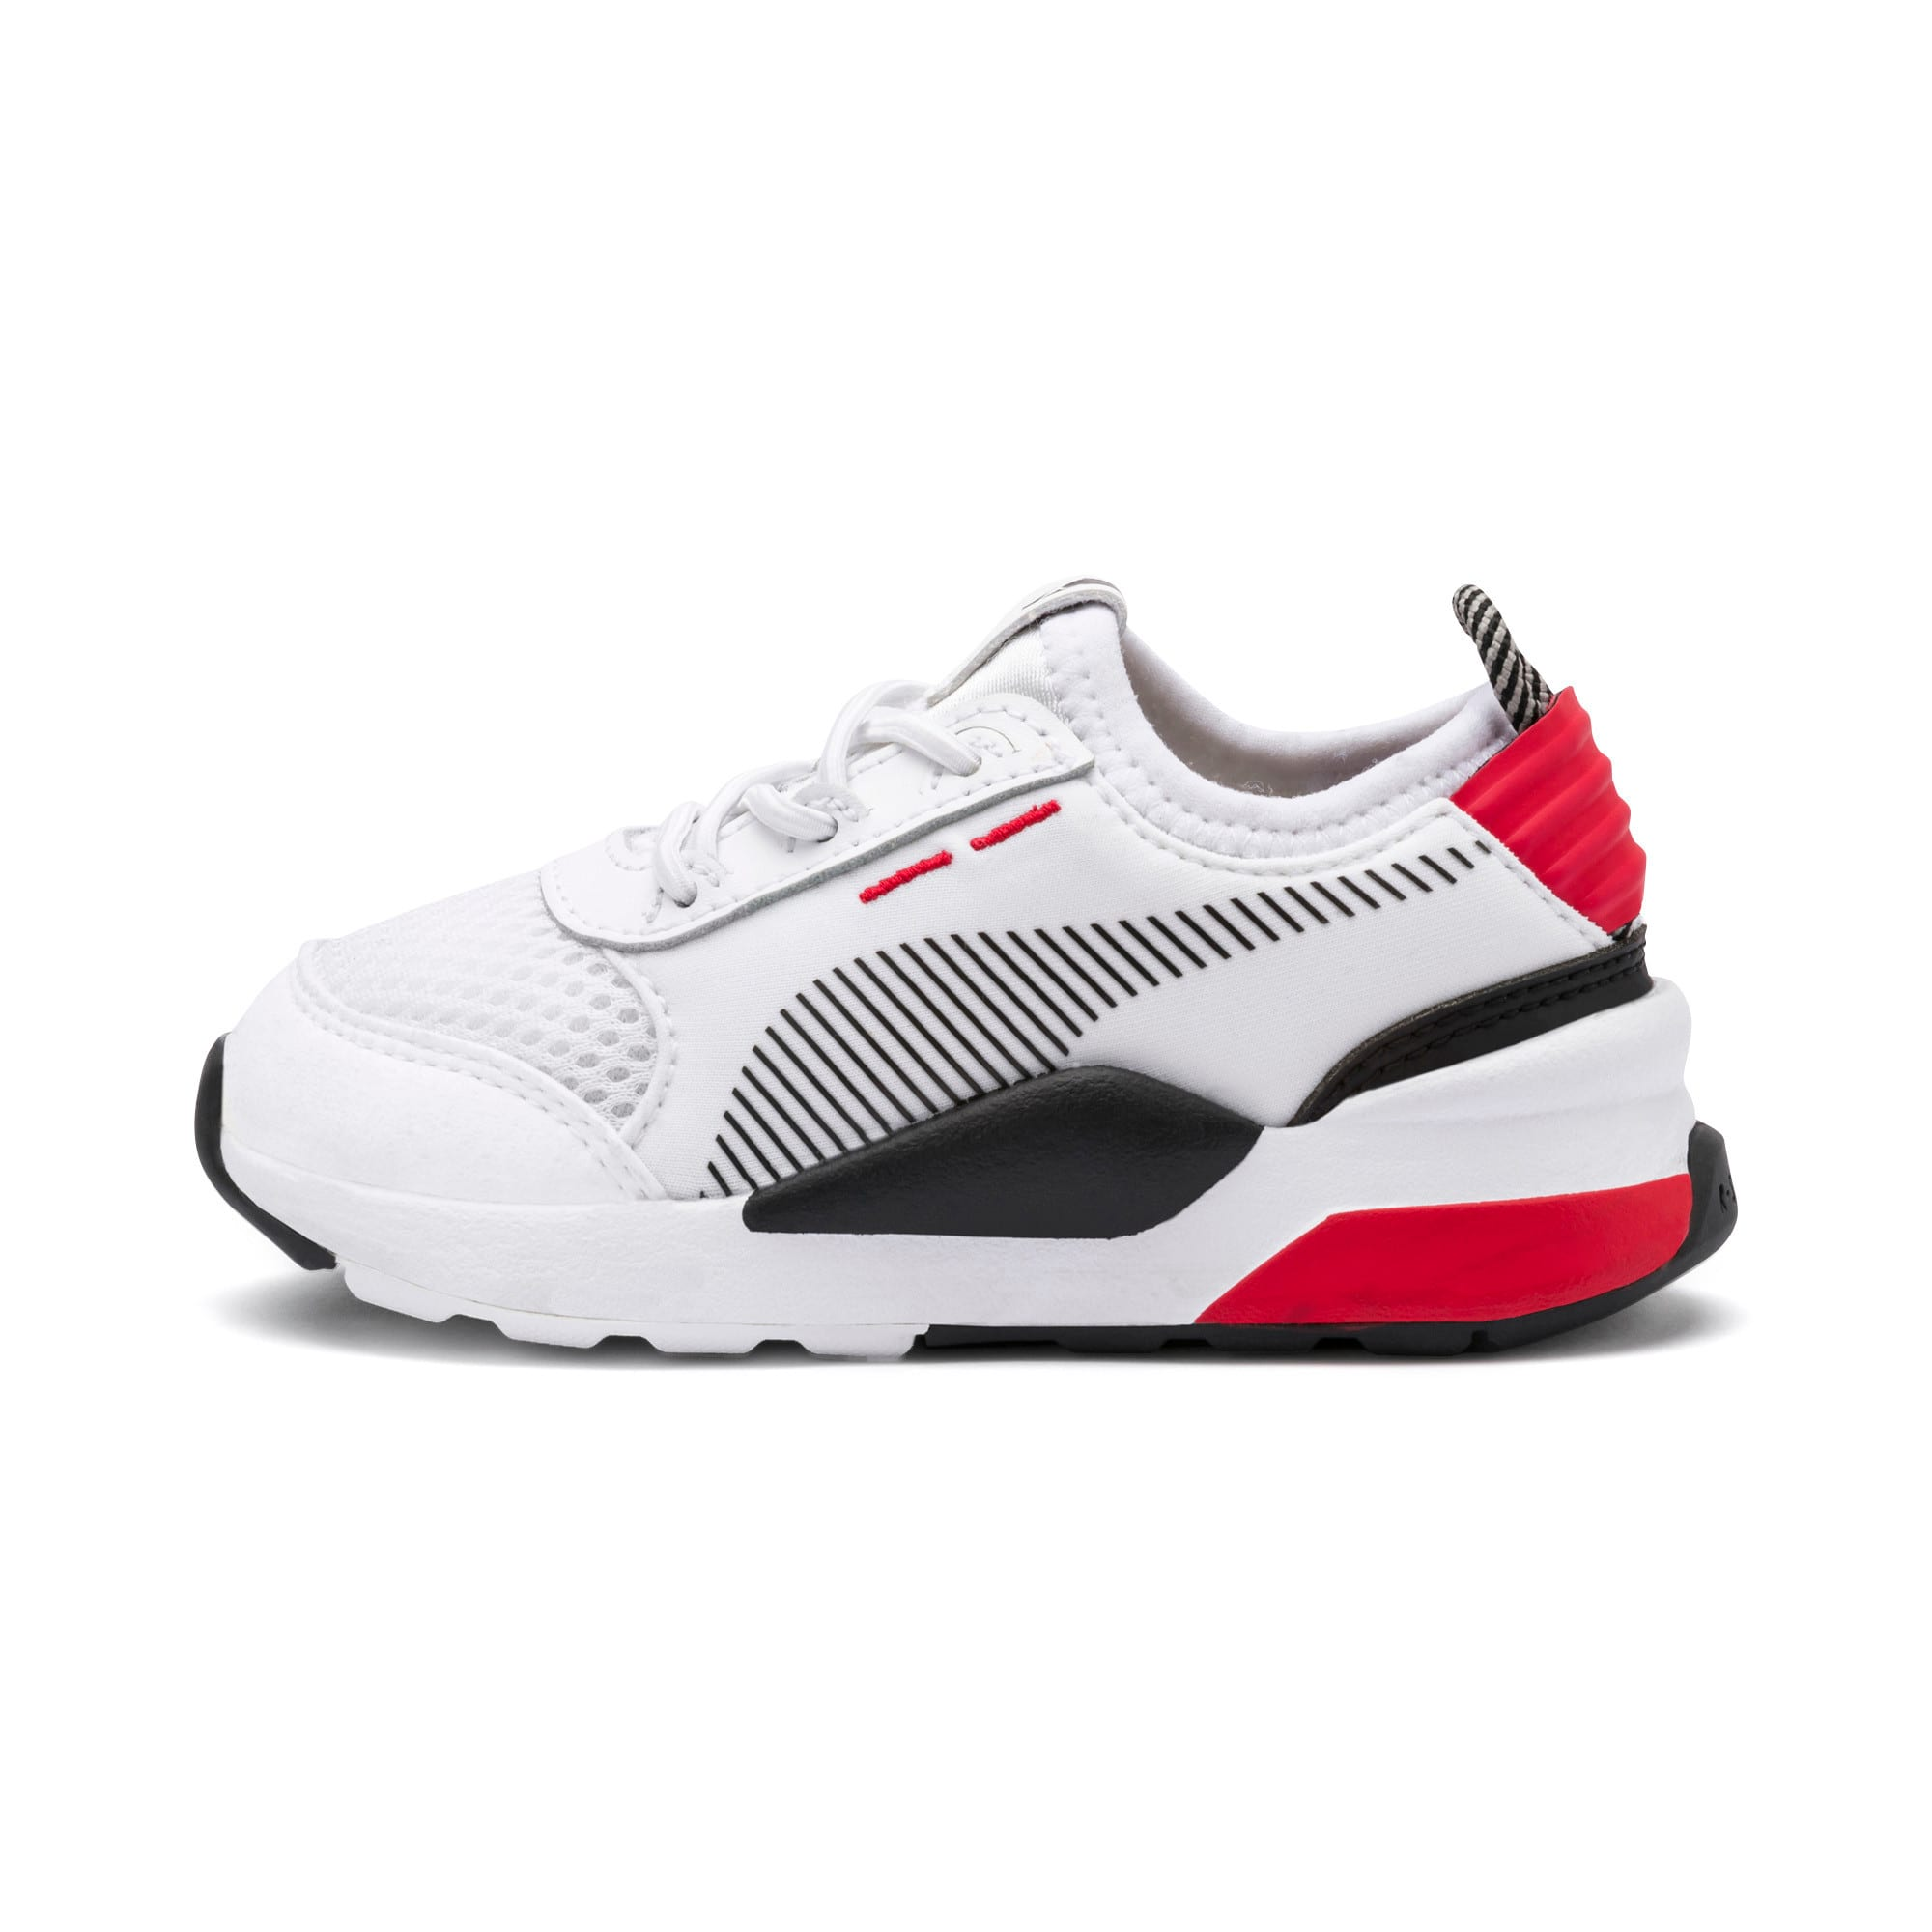 Thumbnail 1 of RS-0 Winter Inj Toys INF Shoes, Puma White-High Risk Red, medium